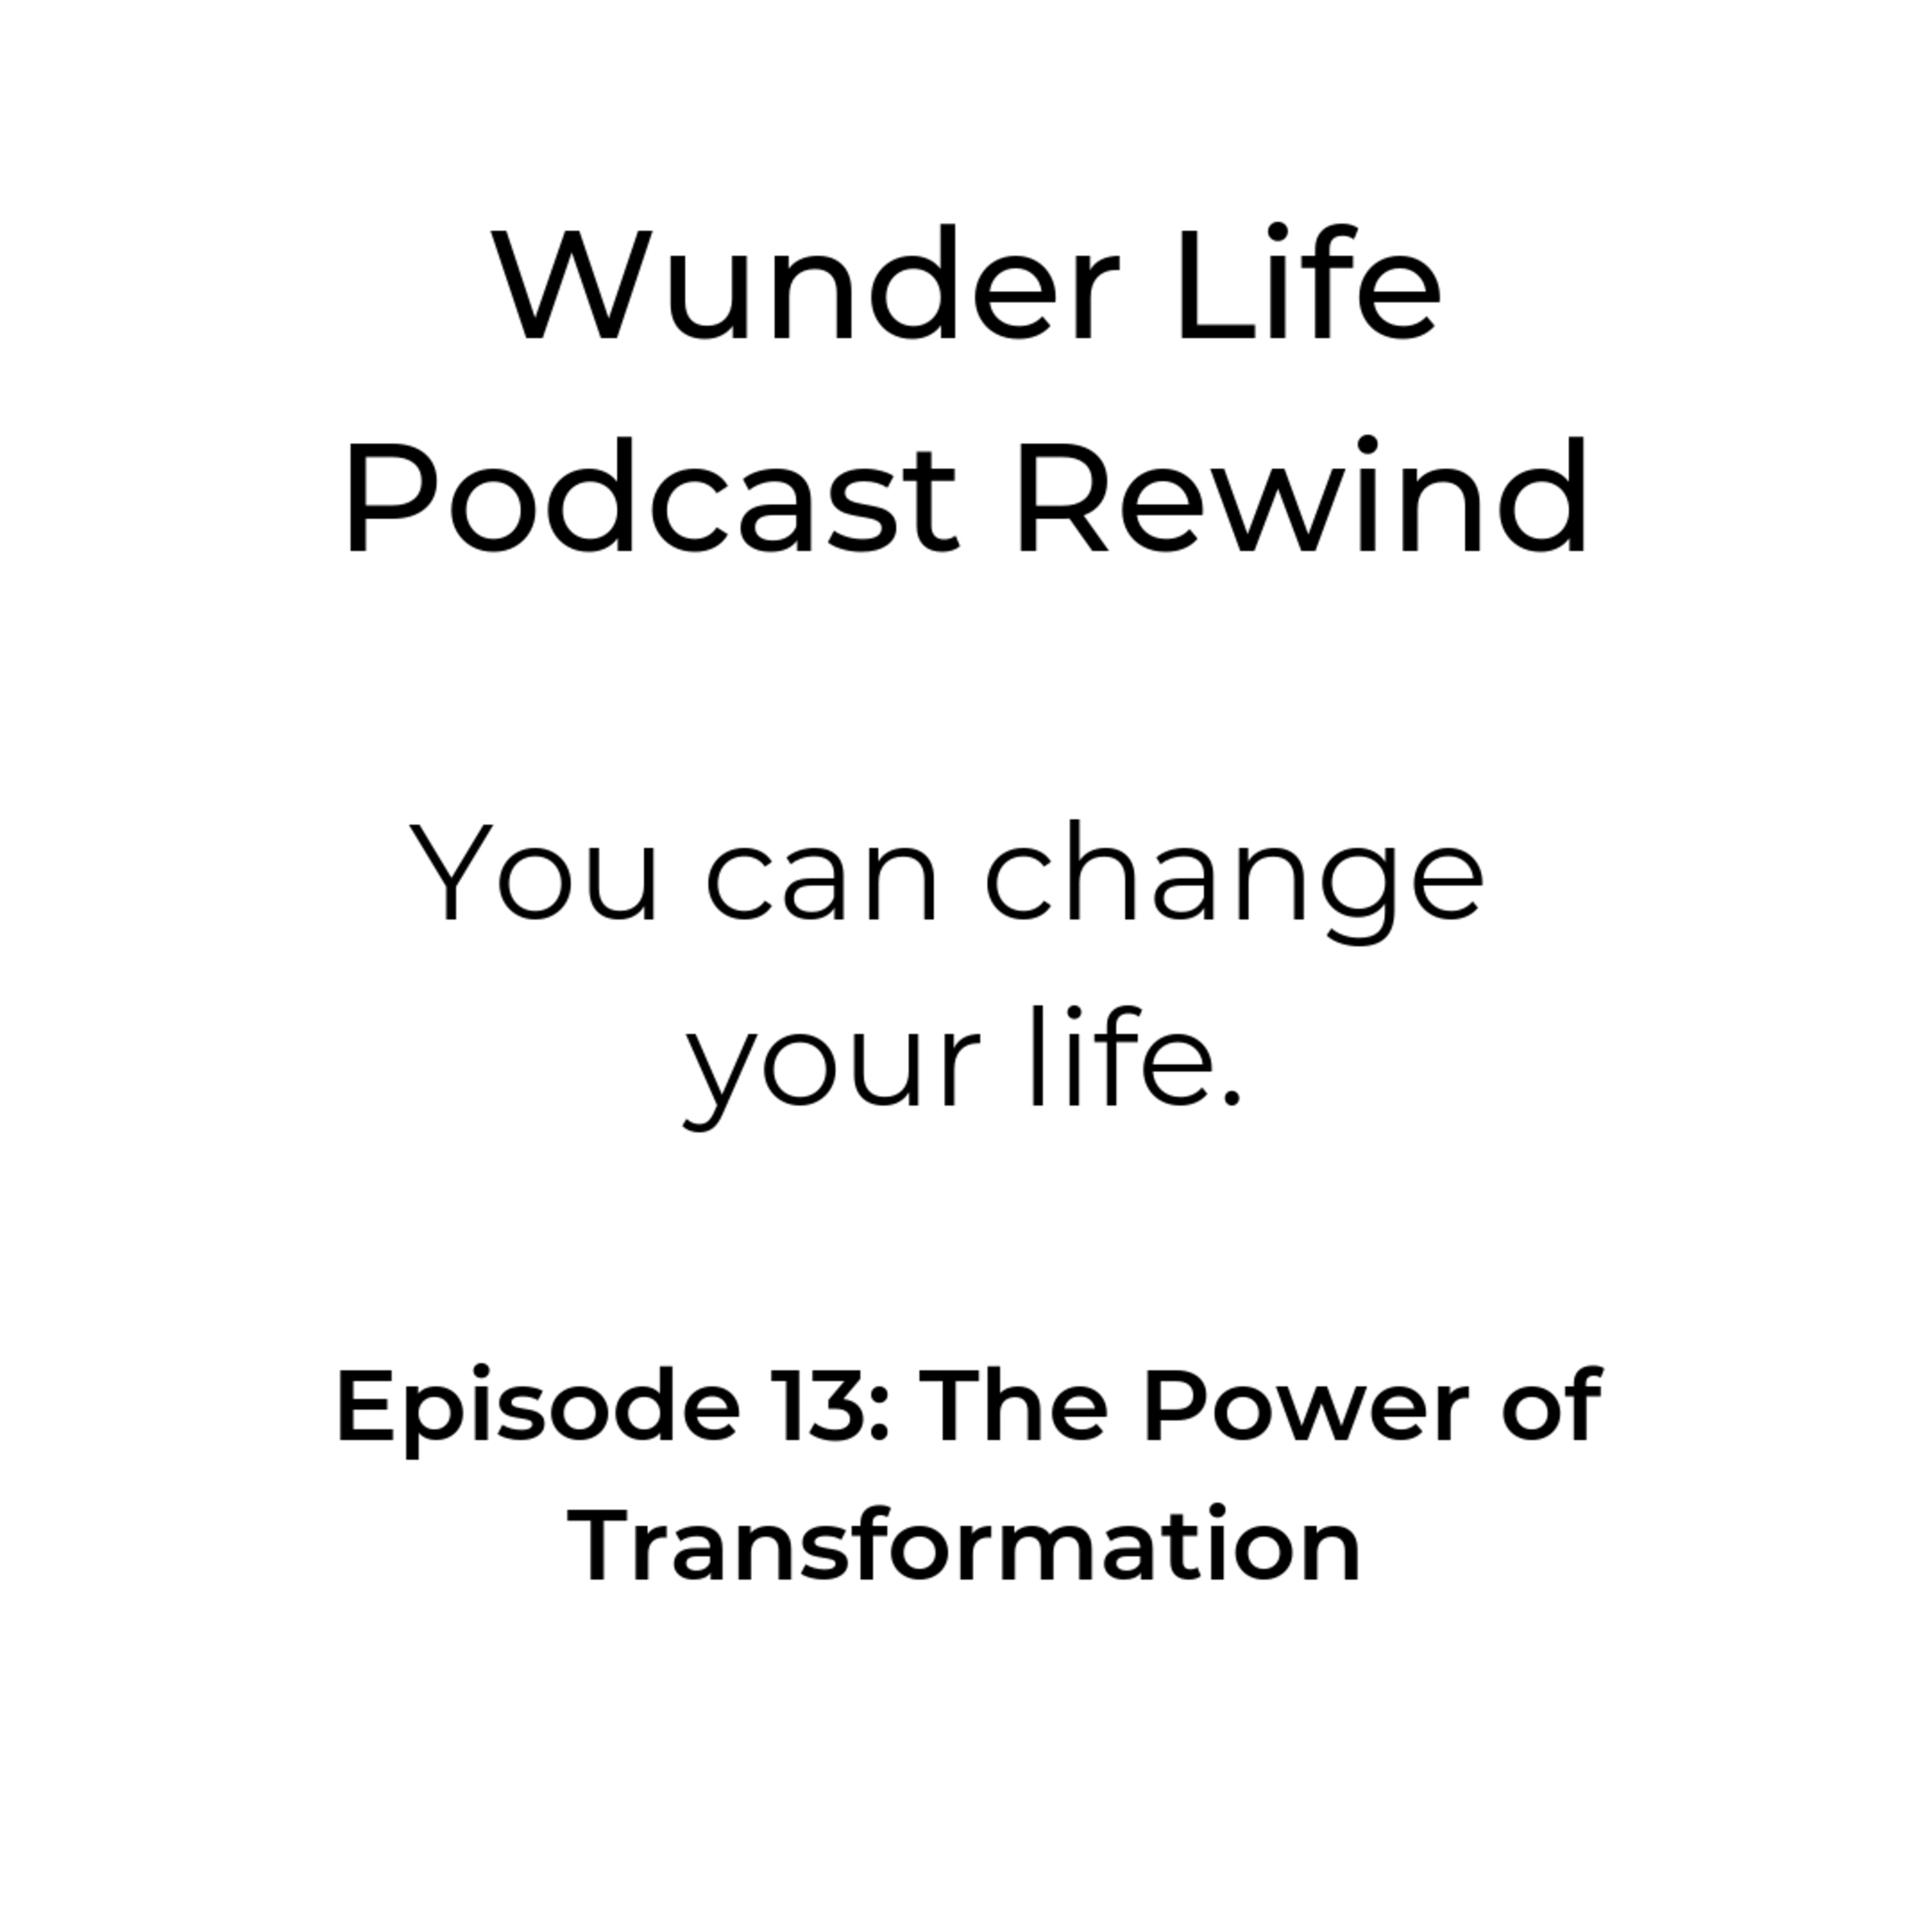 Wunder Life Podcast Rewind Episode 13: The Power of Transformation